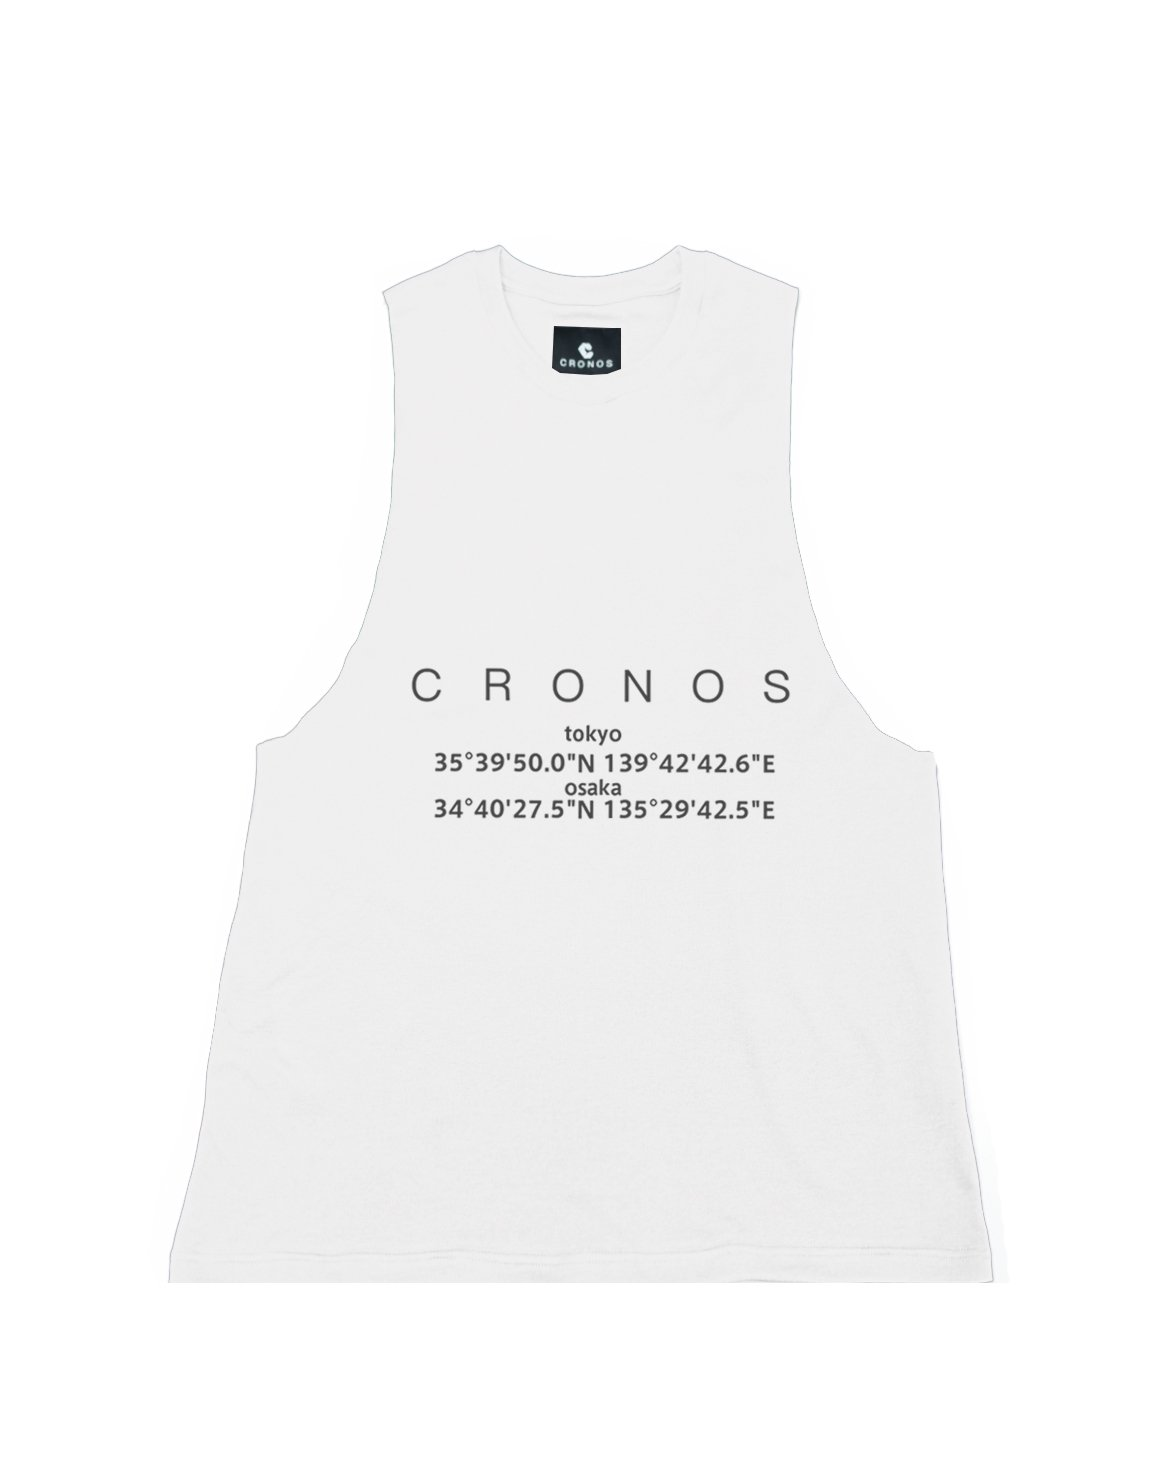 <img class='new_mark_img1' src='https://img.shop-pro.jp/img/new/icons55.gif' style='border:none;display:inline;margin:0px;padding:0px;width:auto;' />CRONOS LOCATION LOGO TANK TOP【WHITE】